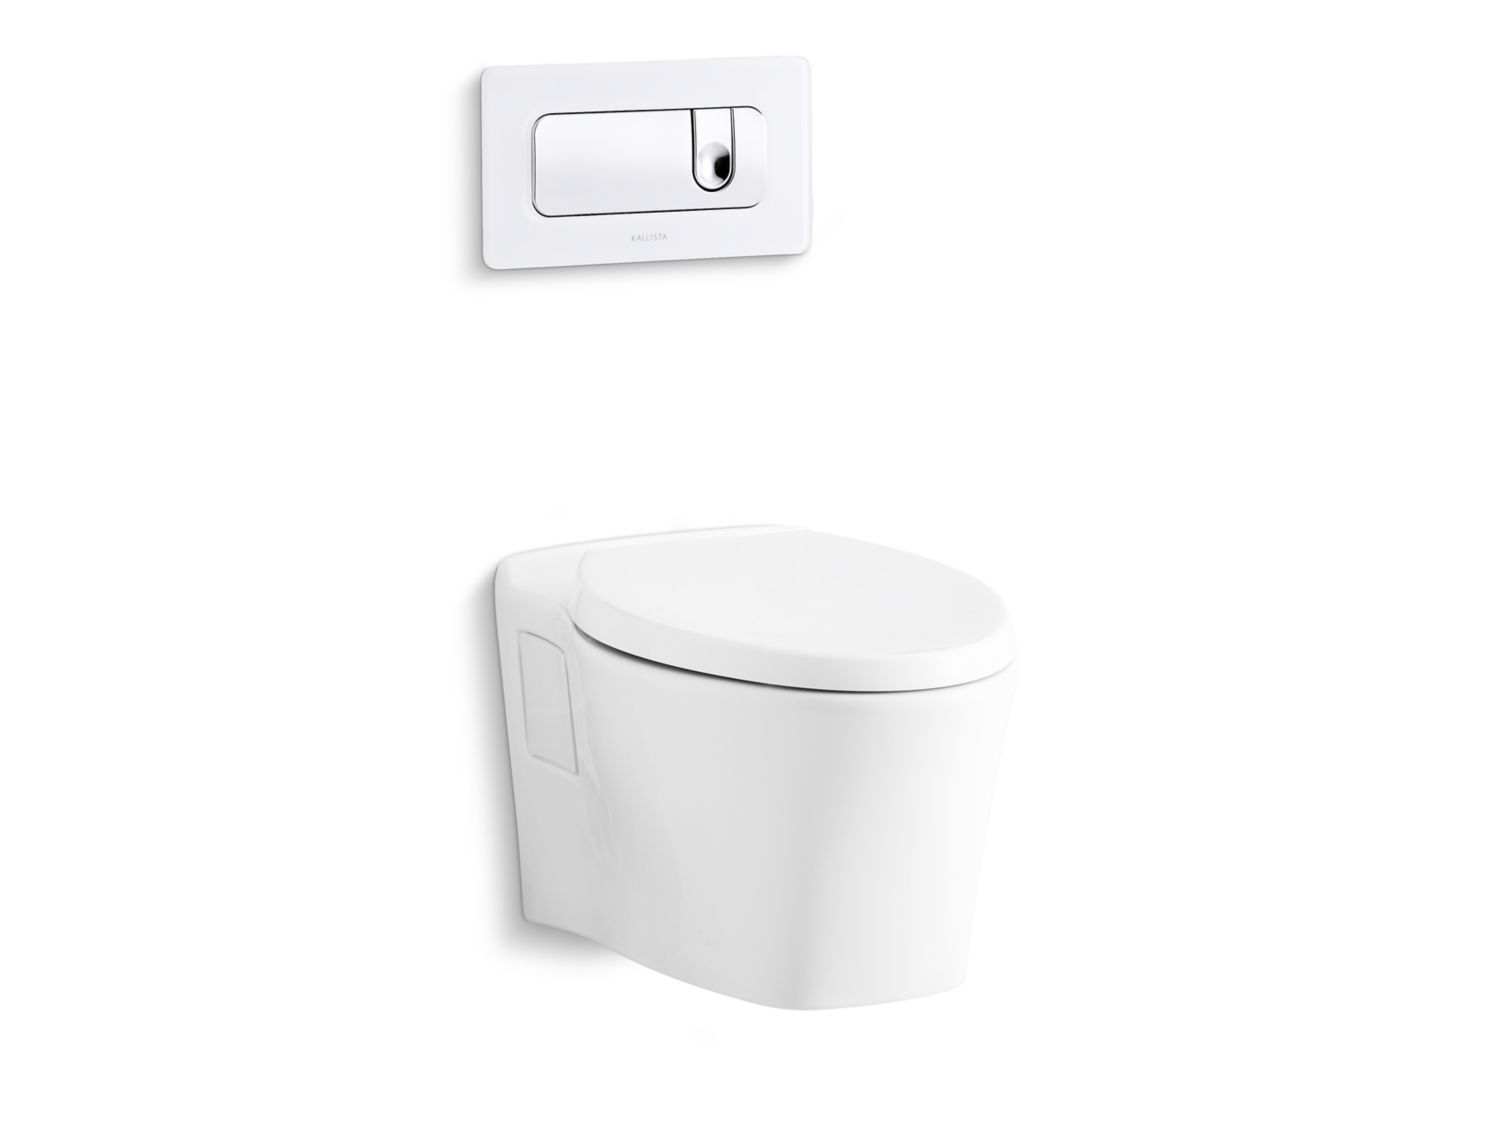 Strange Pleo Modern Toilet Seat With Slow Close Quick Hinge Release P70363 00 Toilet Seats Toilets Bidets Kallista Short Links Chair Design For Home Short Linksinfo